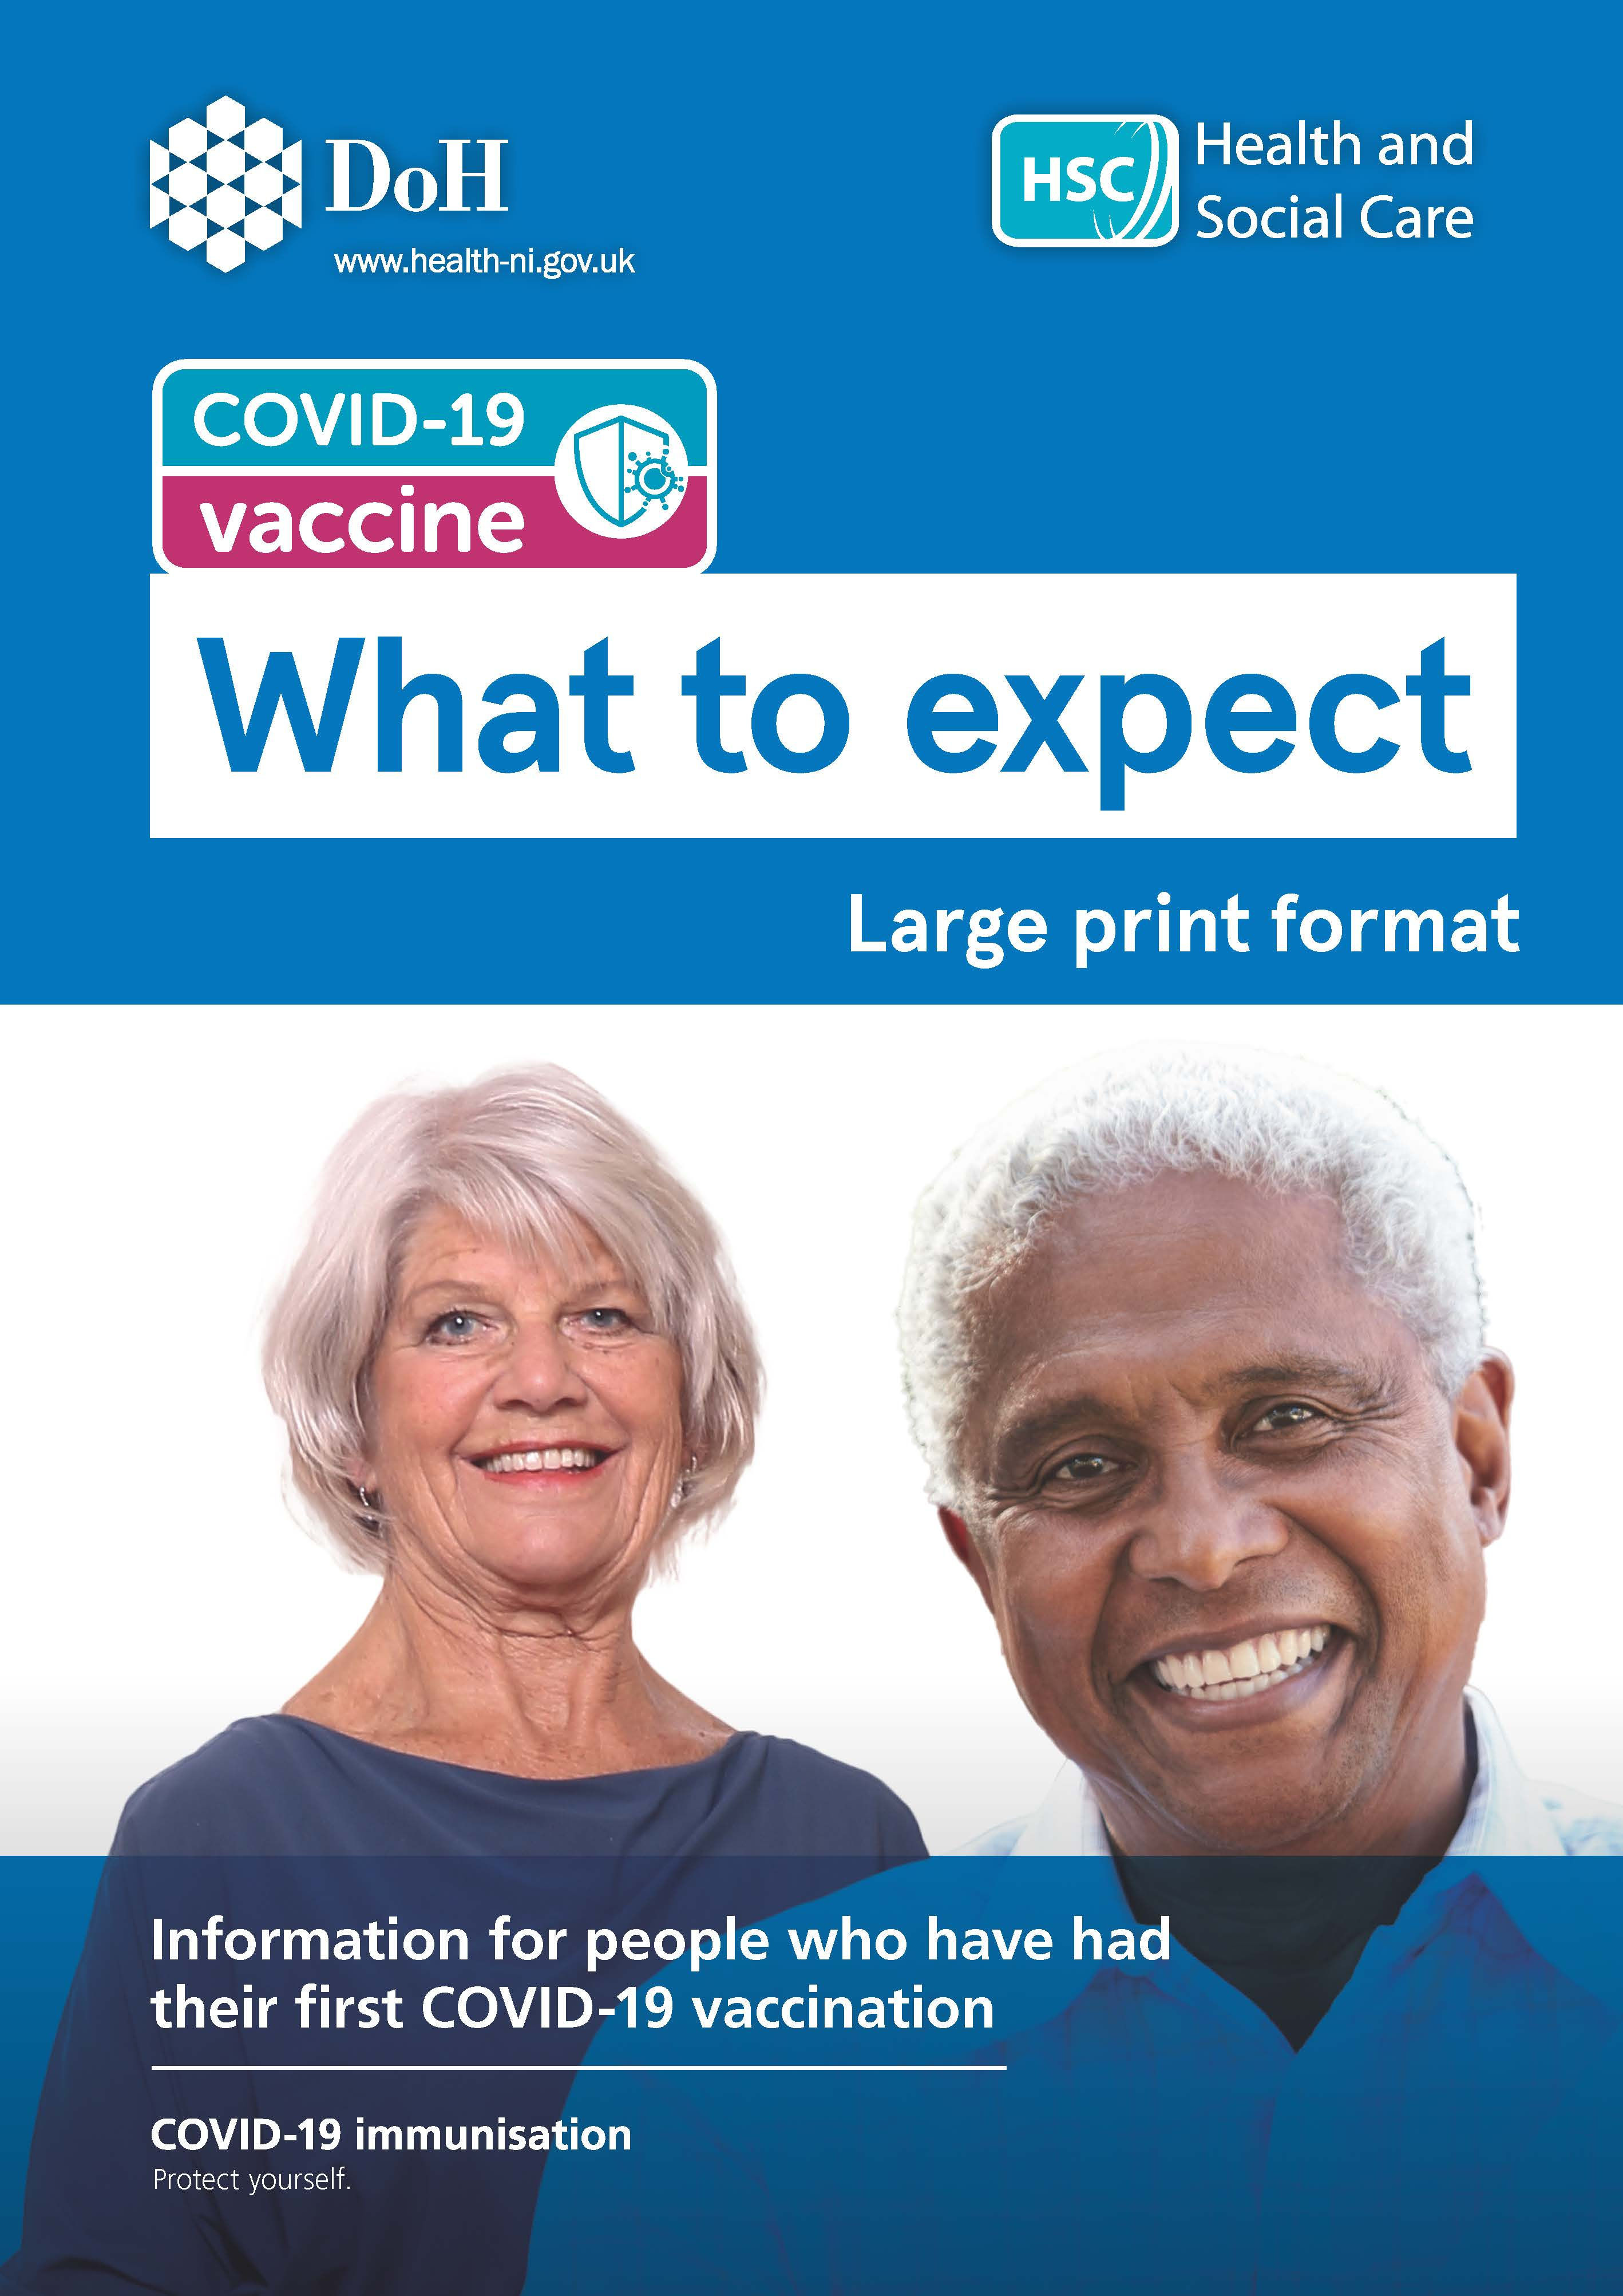 COVID-19 vaccine - What to expect leaflet image